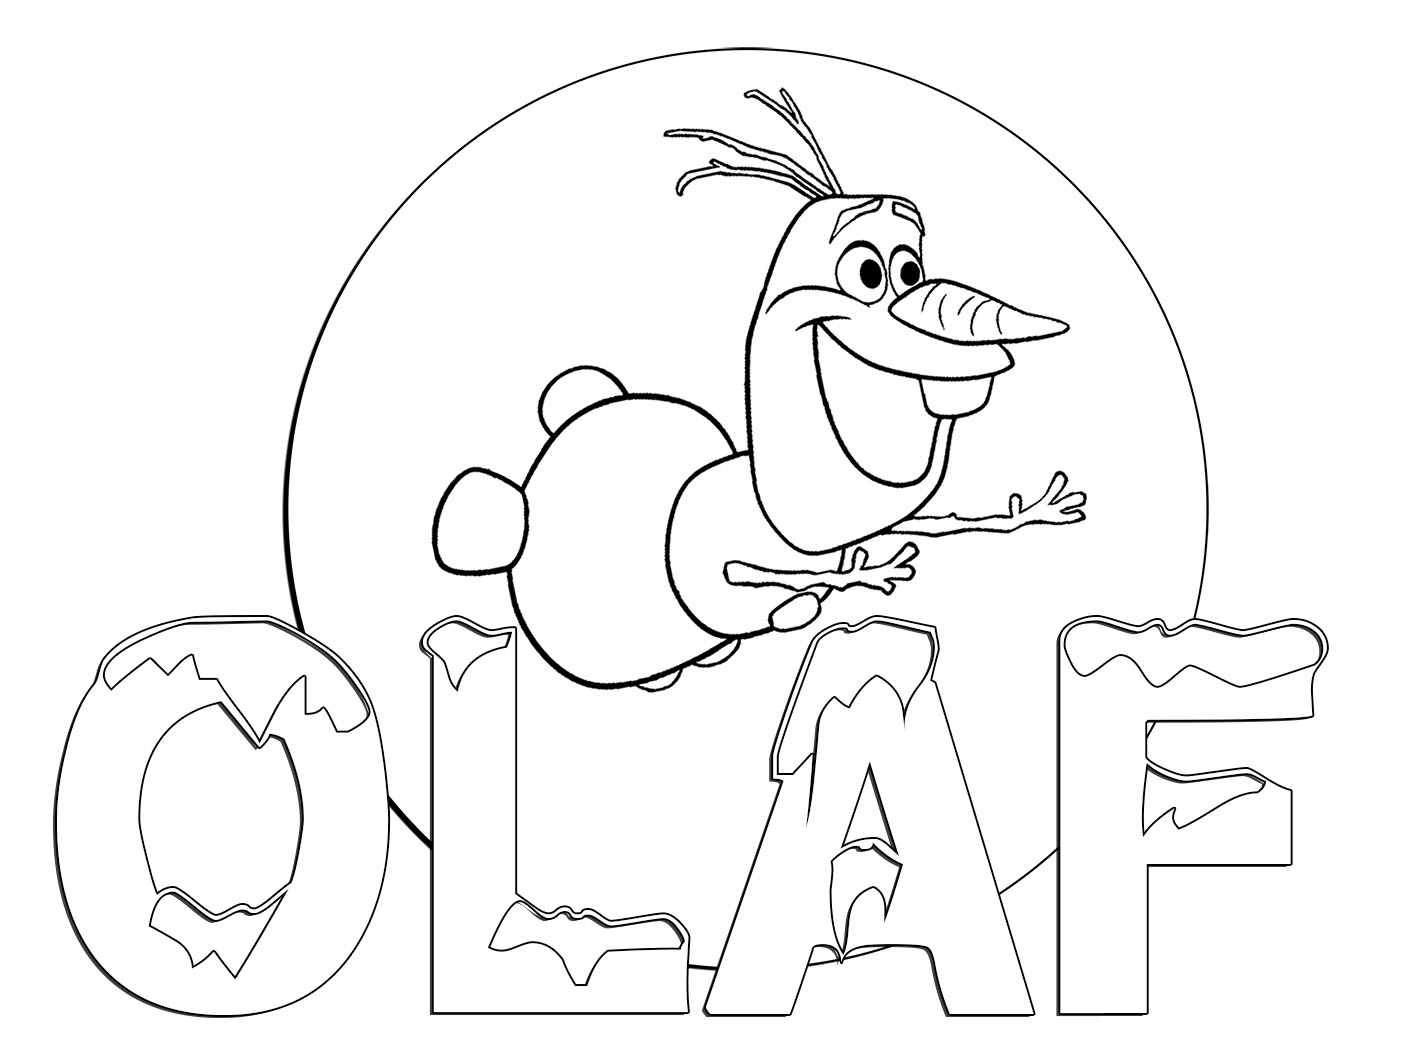 coloring pages to print frozen free printable frozen coloring pages for kids best print coloring to pages frozen